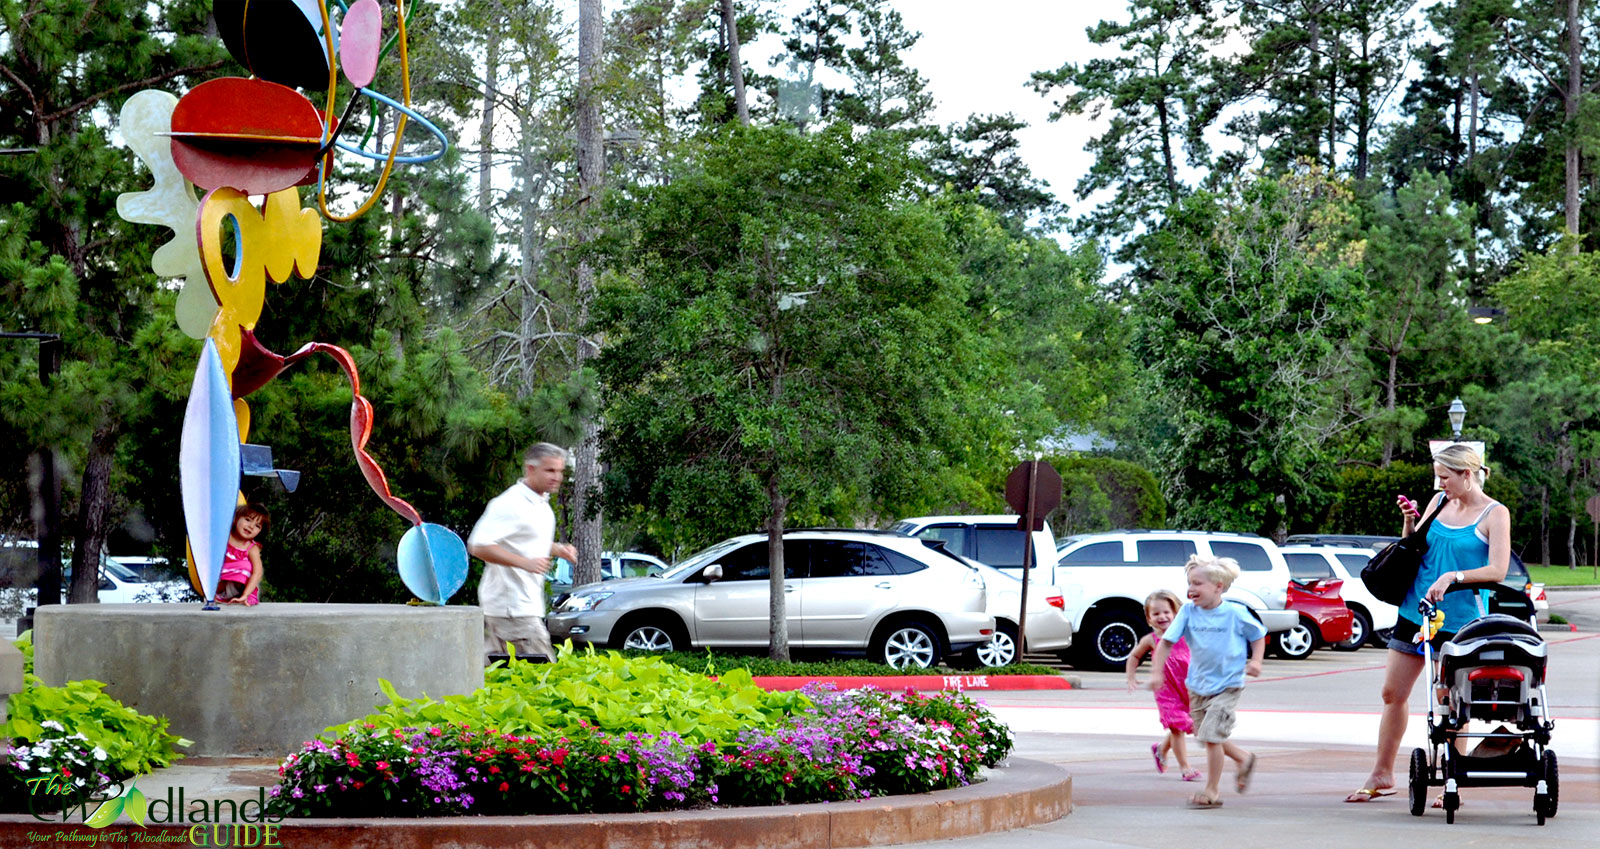 Where To Go In The Woodlands